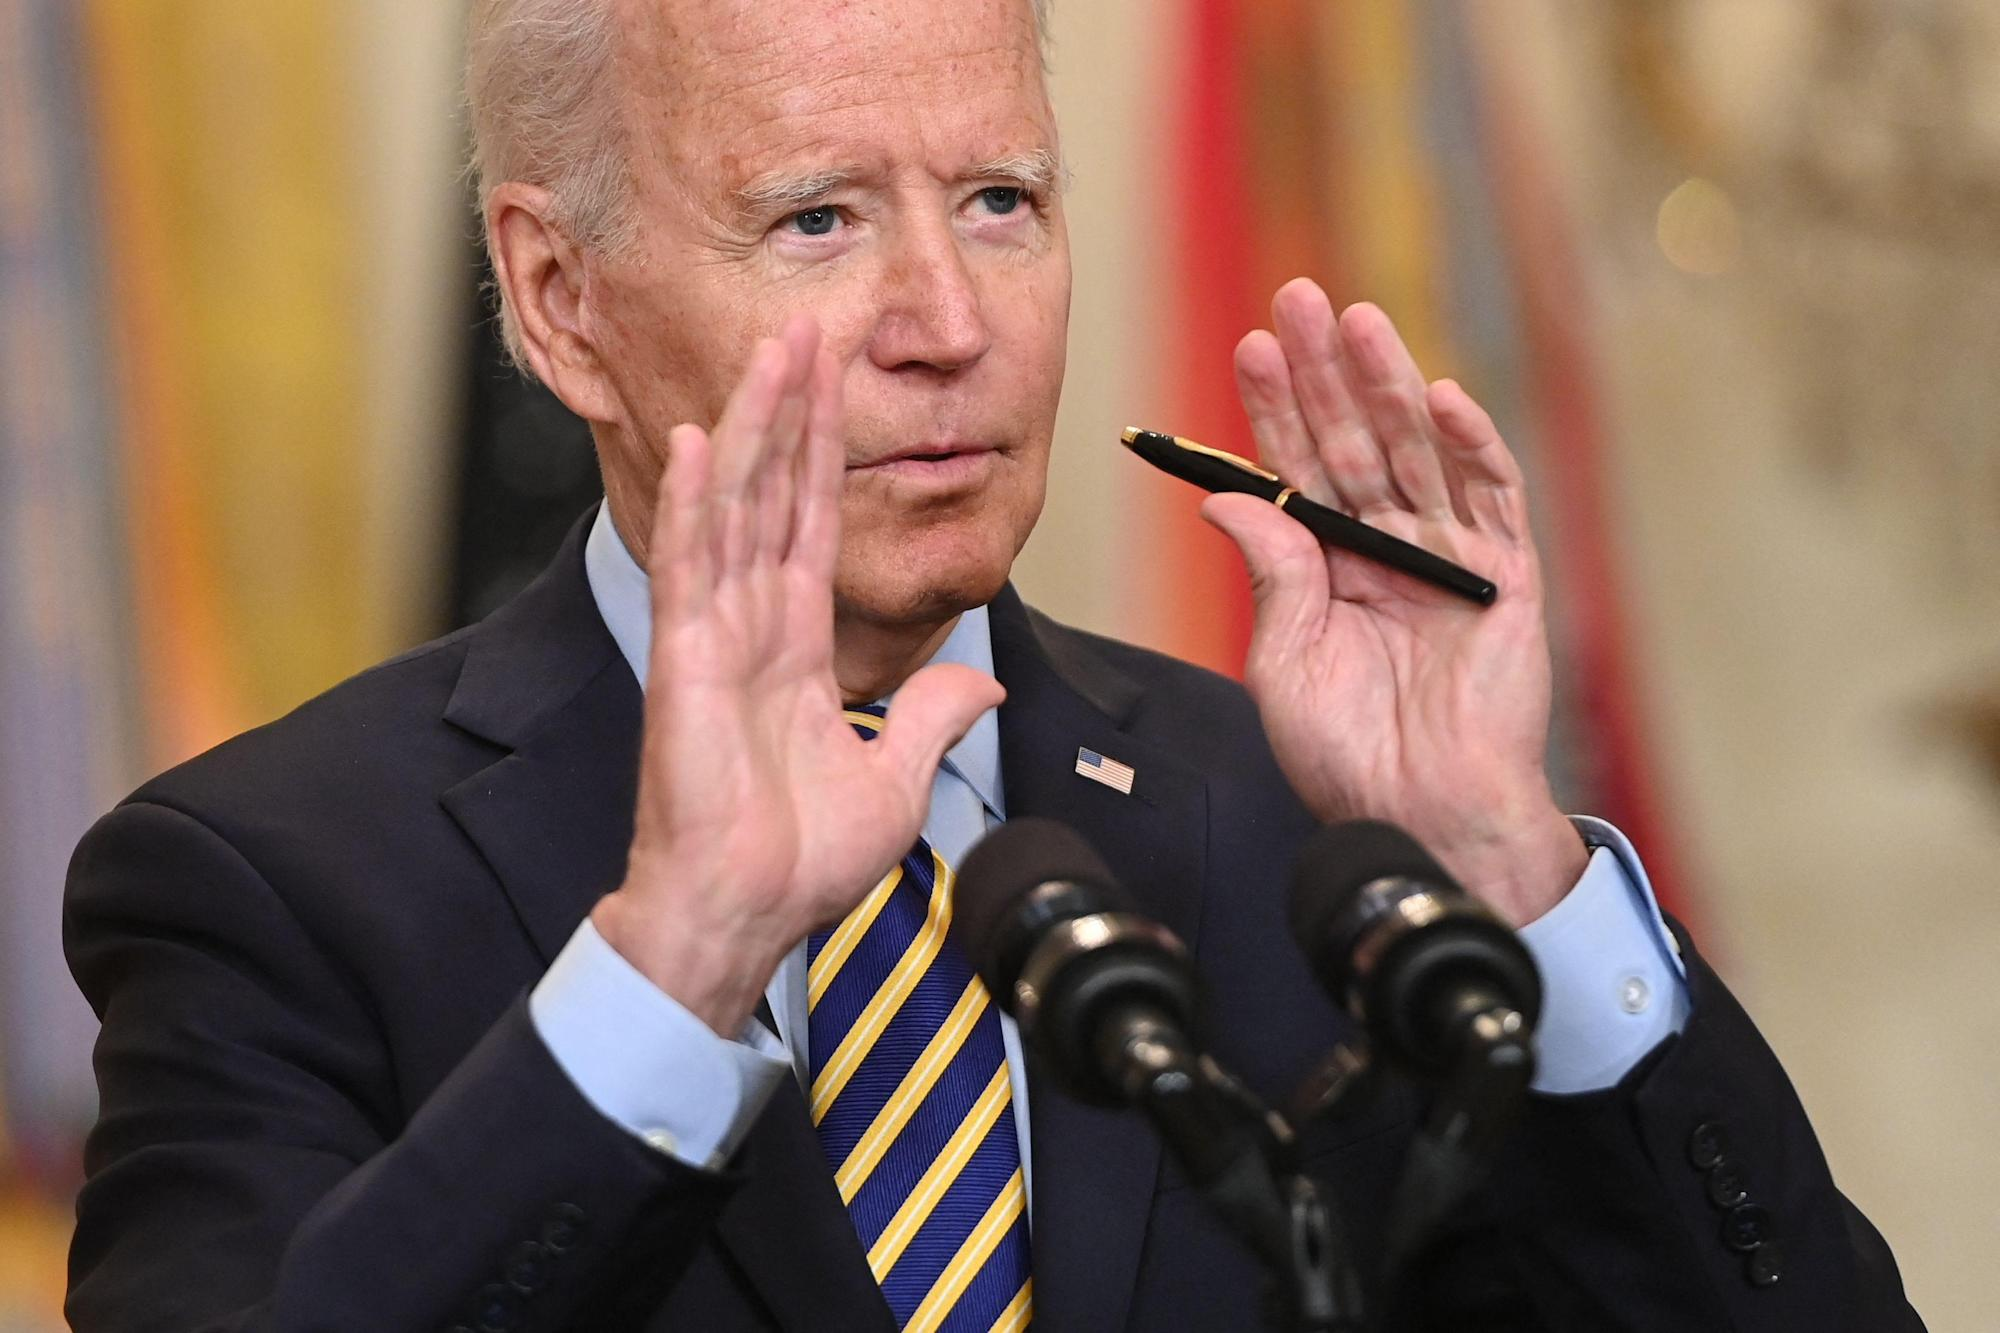 Biden says US will complete pullout from Afghanistan by Aug. 31